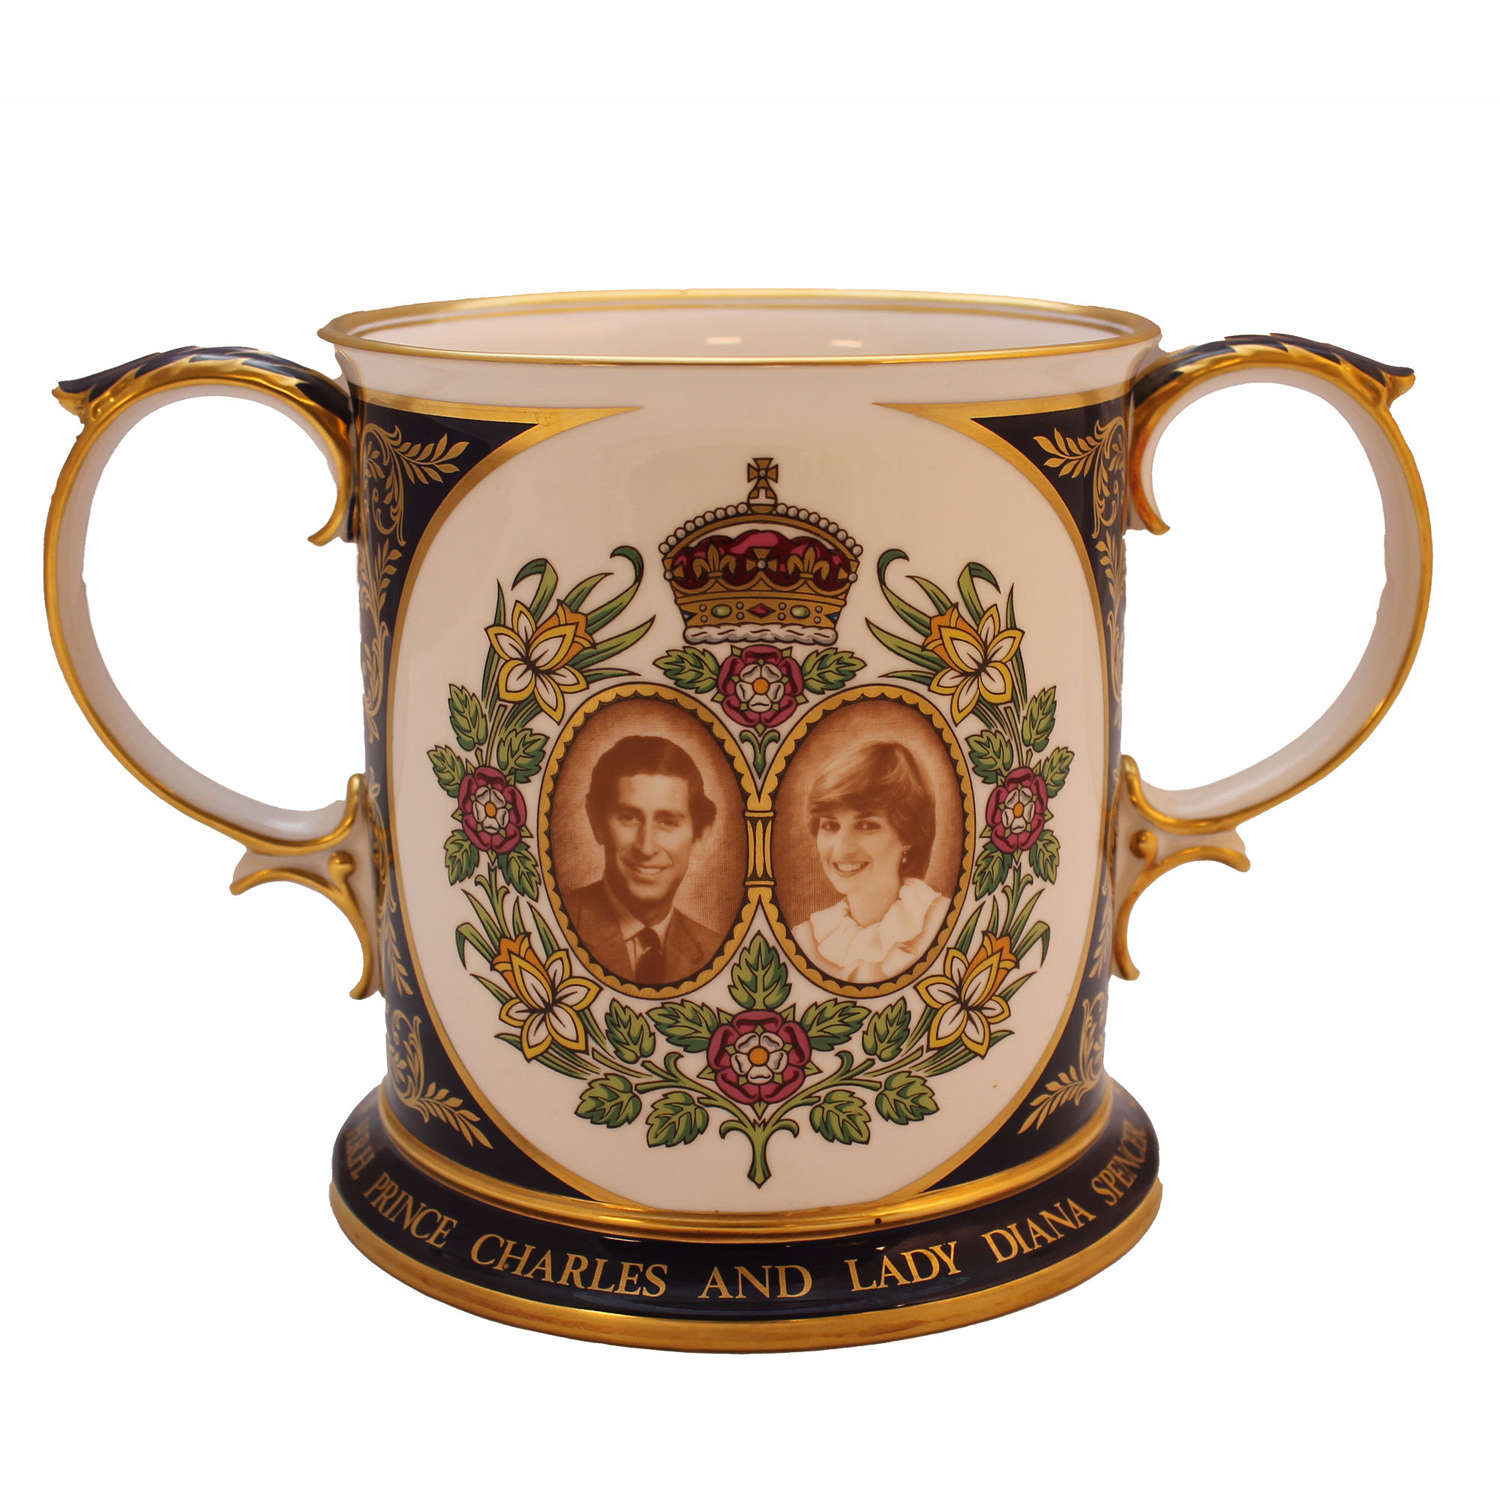 The Royal Wedding Loving Cup- Prince Charles and Lady Diana